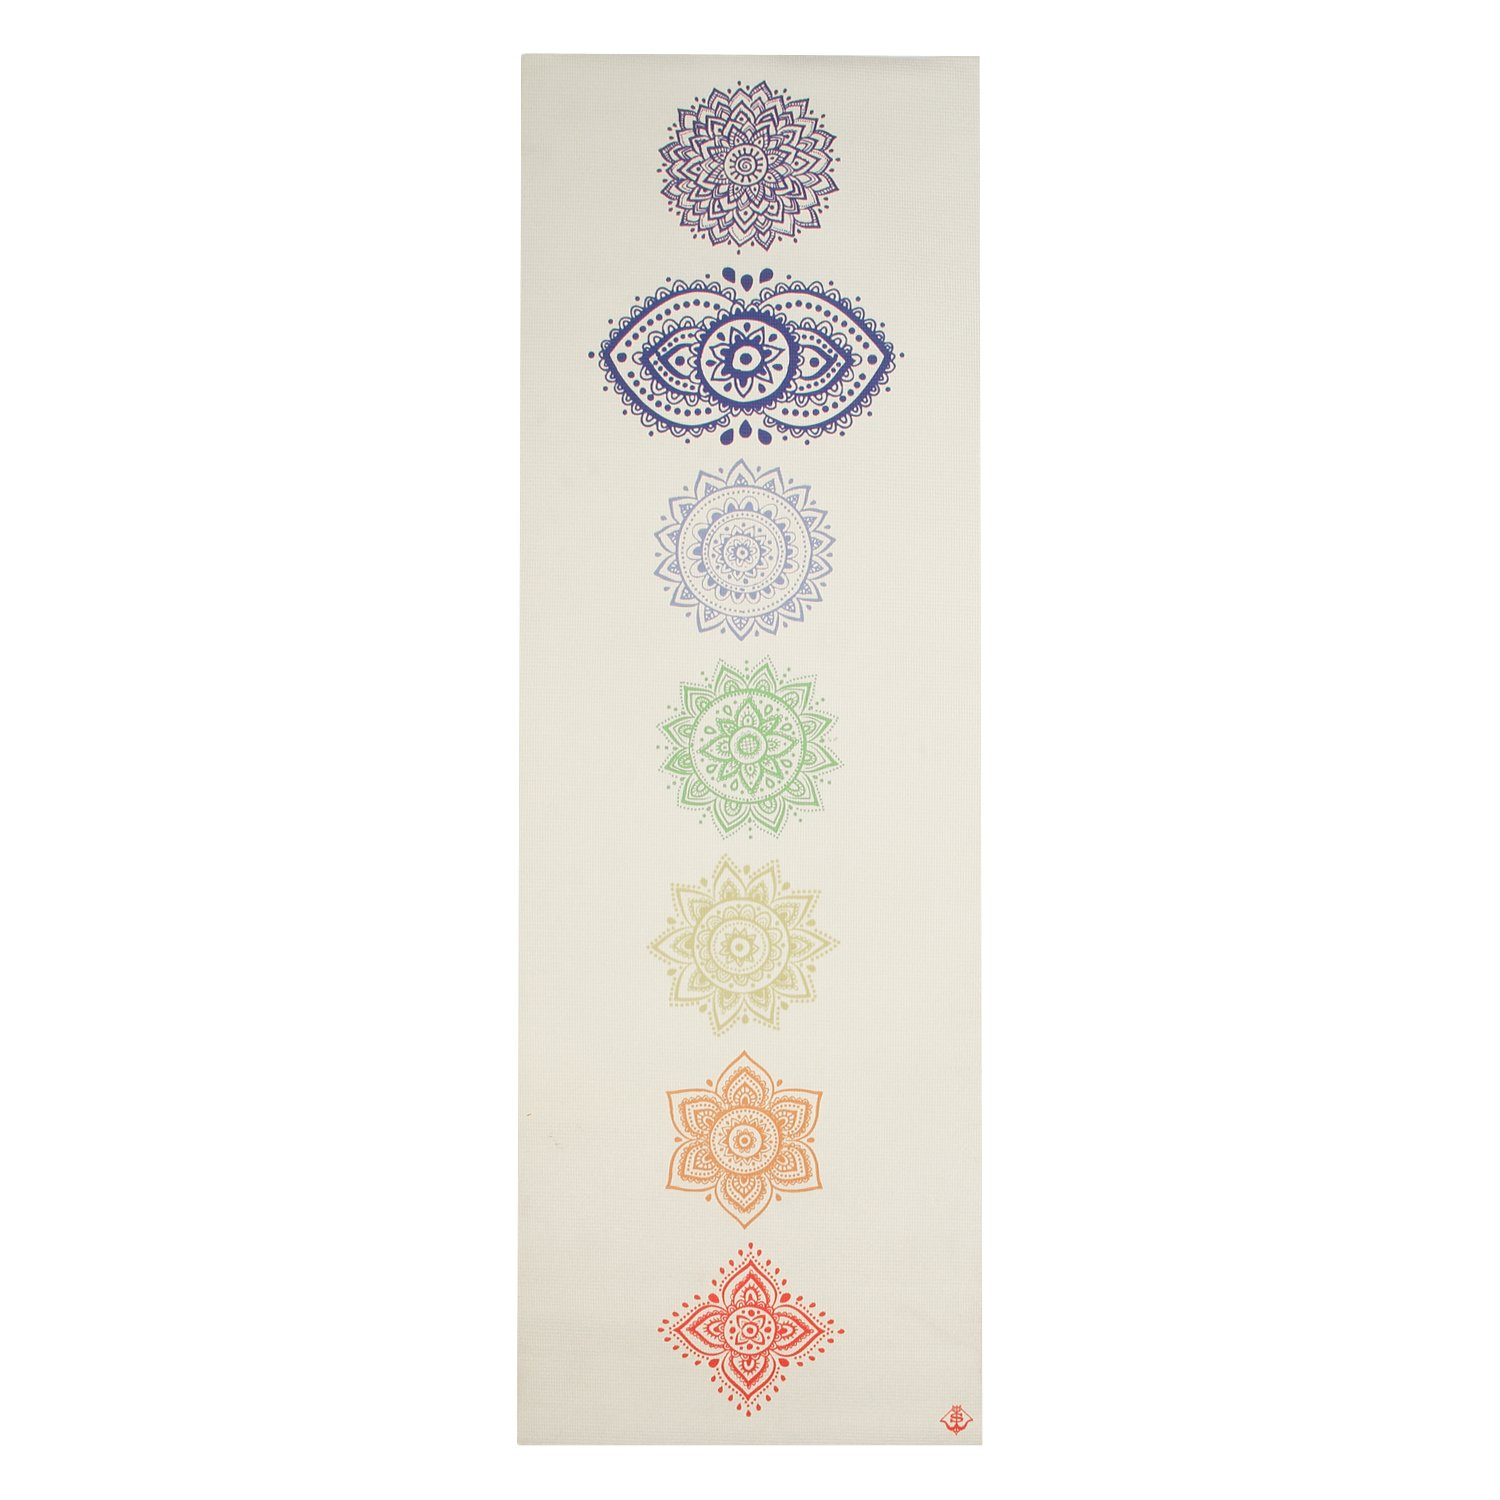 Spiritual Warrior Chakra Yoga Mat: Amazon.es: Deportes y ...